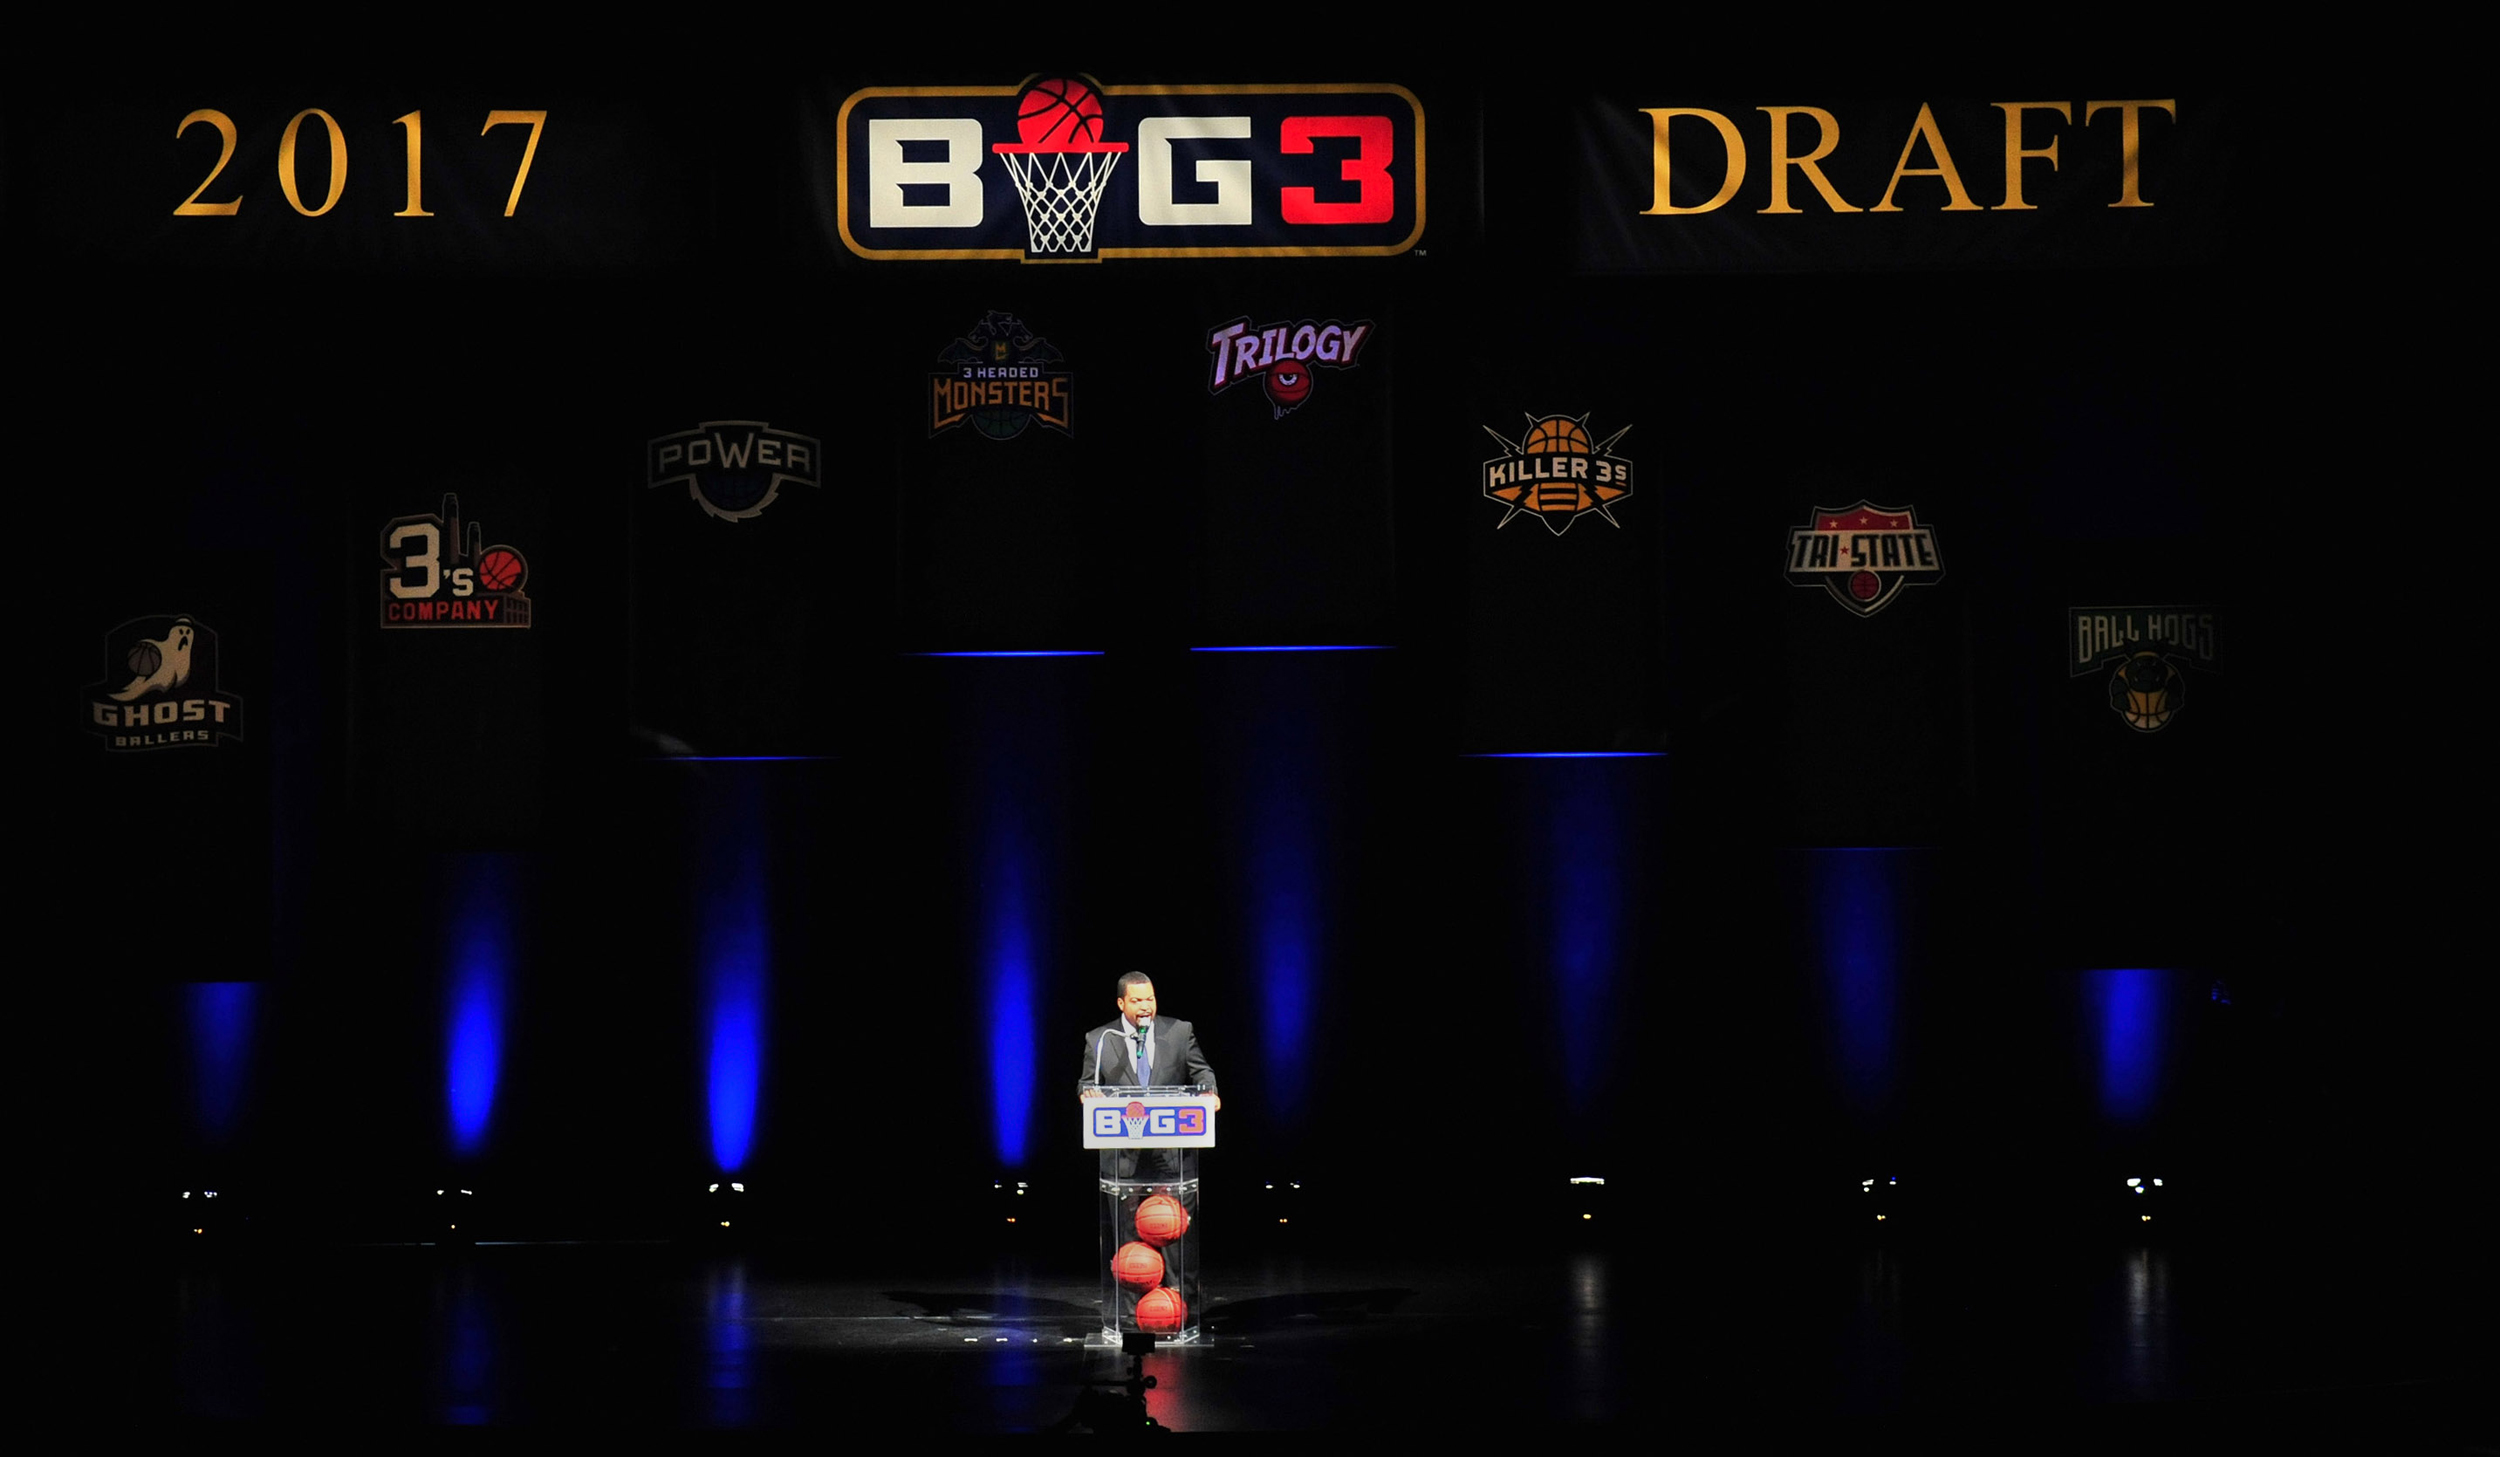 Ice Cube's BIG3 league is not novelty or nostalgia